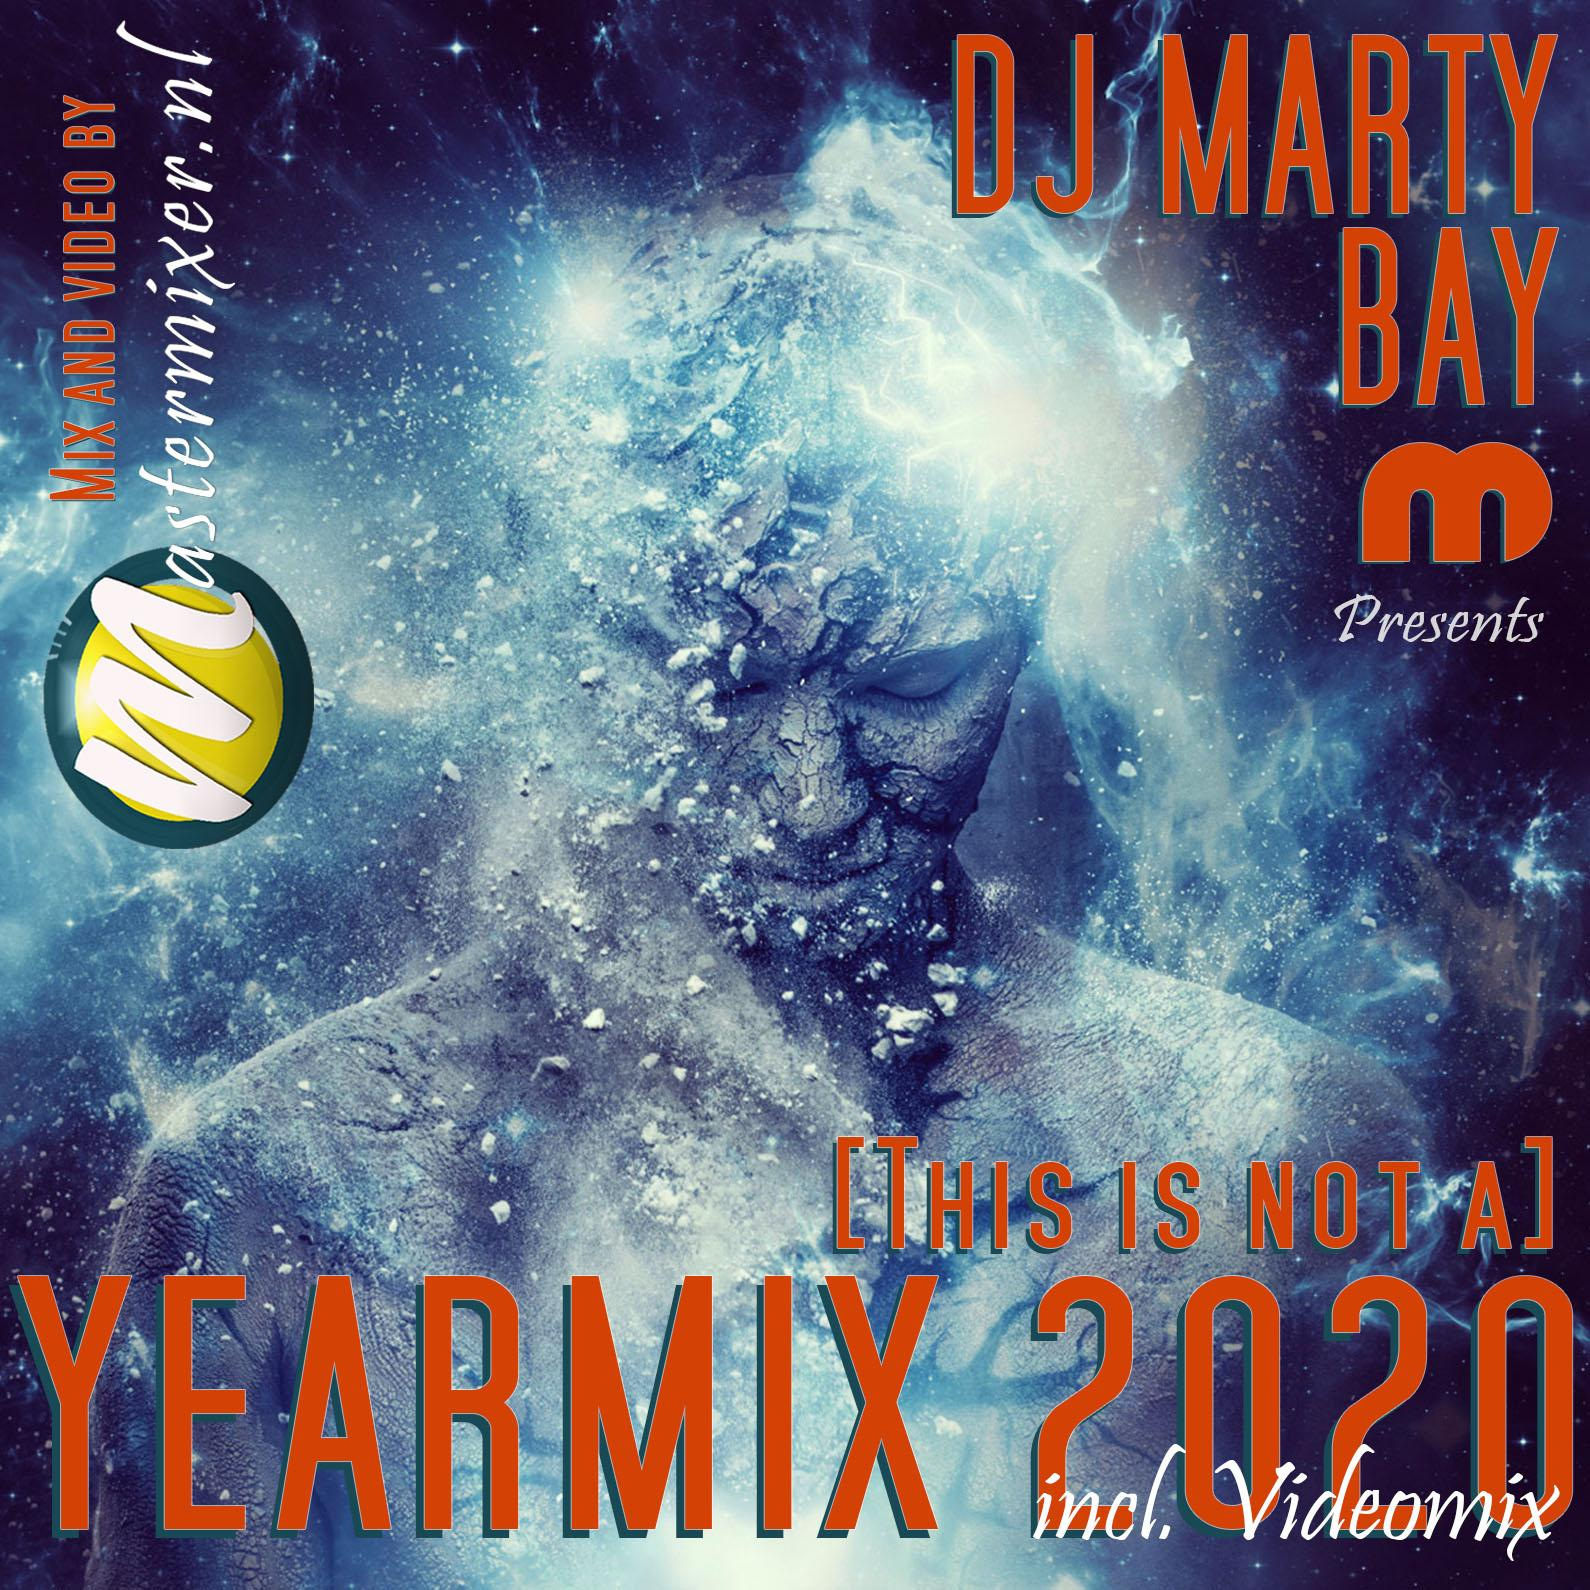 [This Is Not A] Yearmix 2020